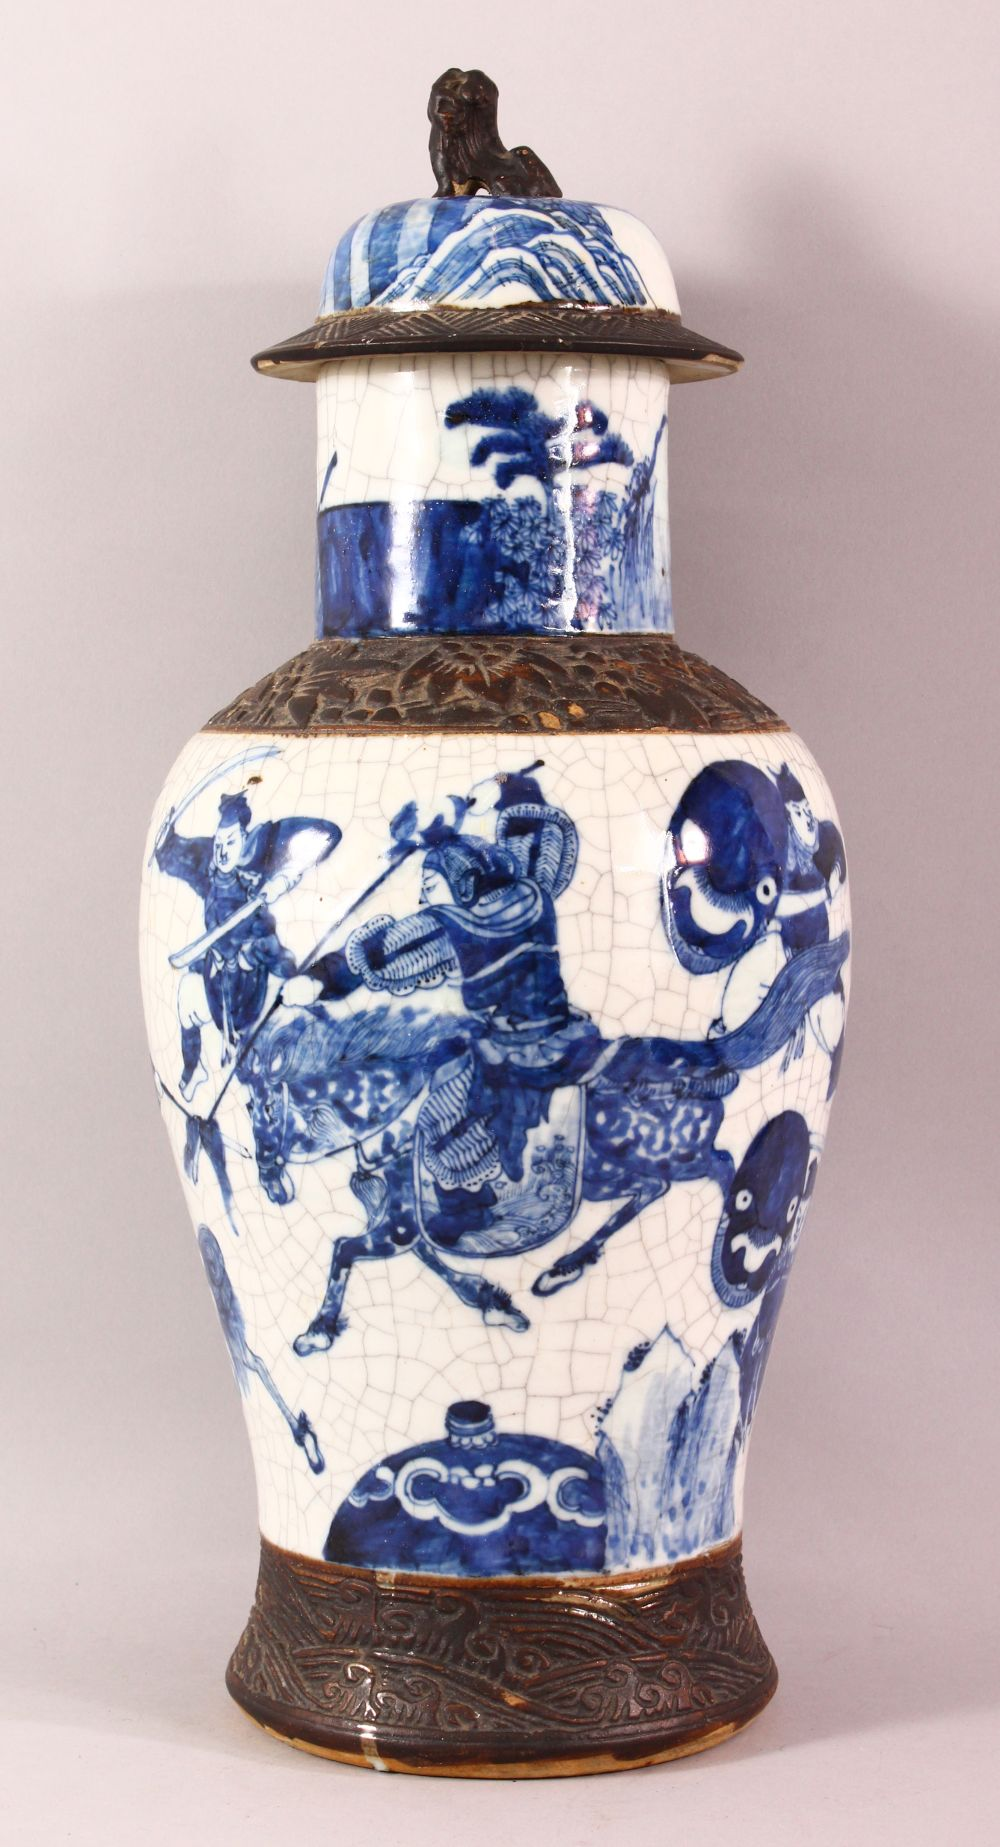 A LARGE 19TH CENTURY CHINESE BLUE & WHITE PORCELAIN VASE, decorated with scenes of warriors , with